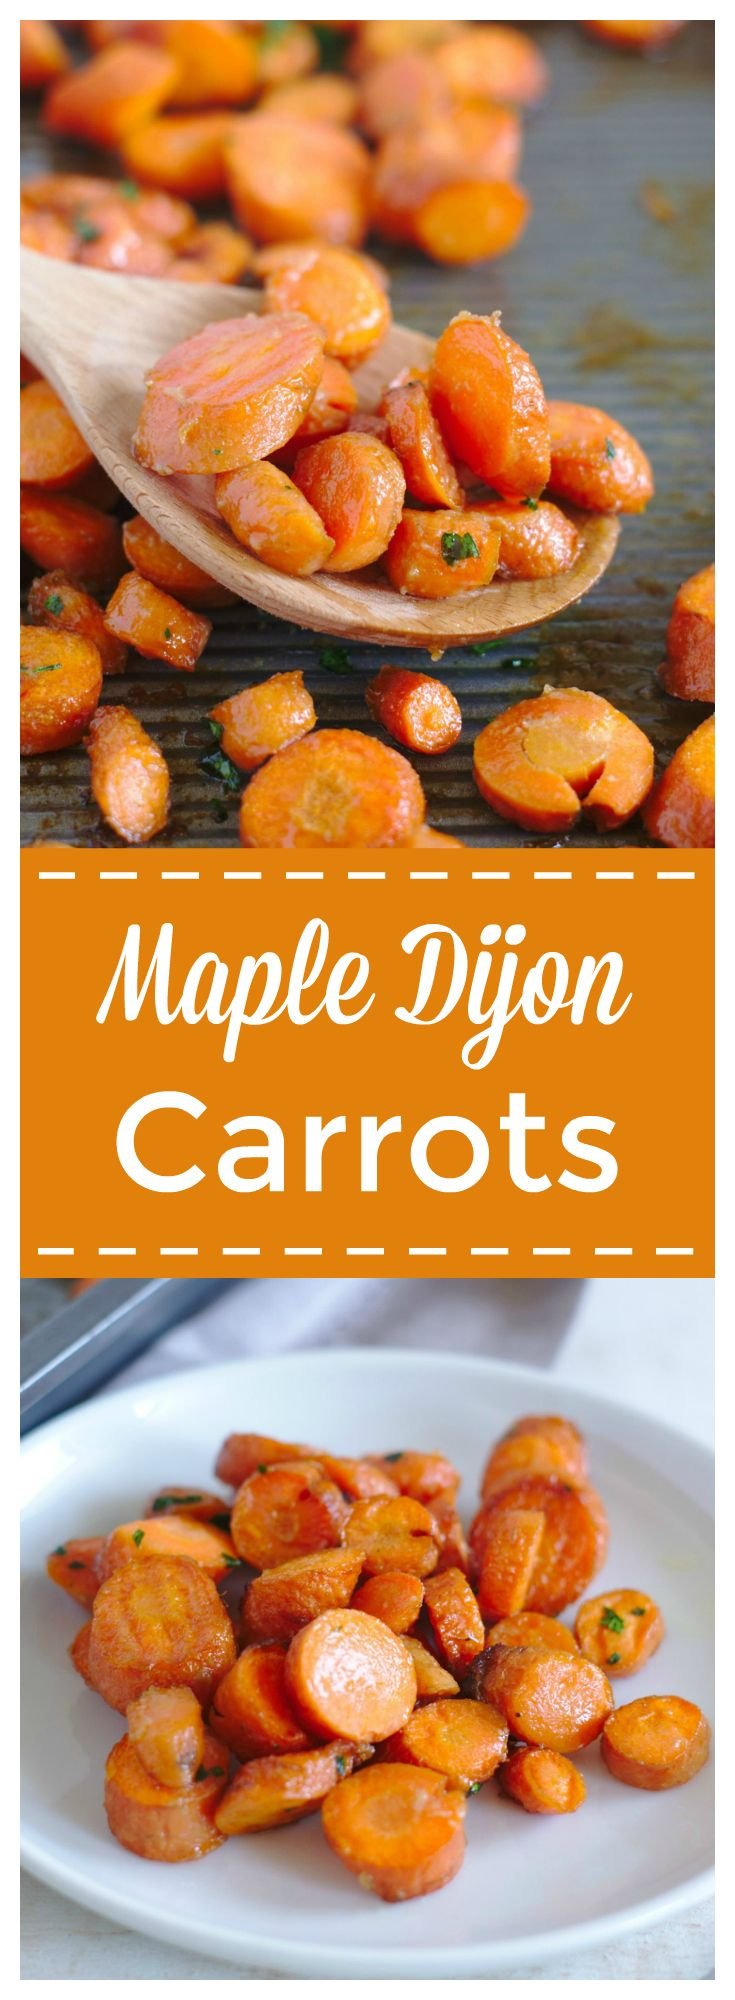 Maple Dijon Roasted Carrots – A quick and easy side dish! Carrots with a maple dijon glaze baked on a sheet pan until tender. The ultimate oven roasted carrots recipe! #carrots #vegetables #veggies #sidedish #maple